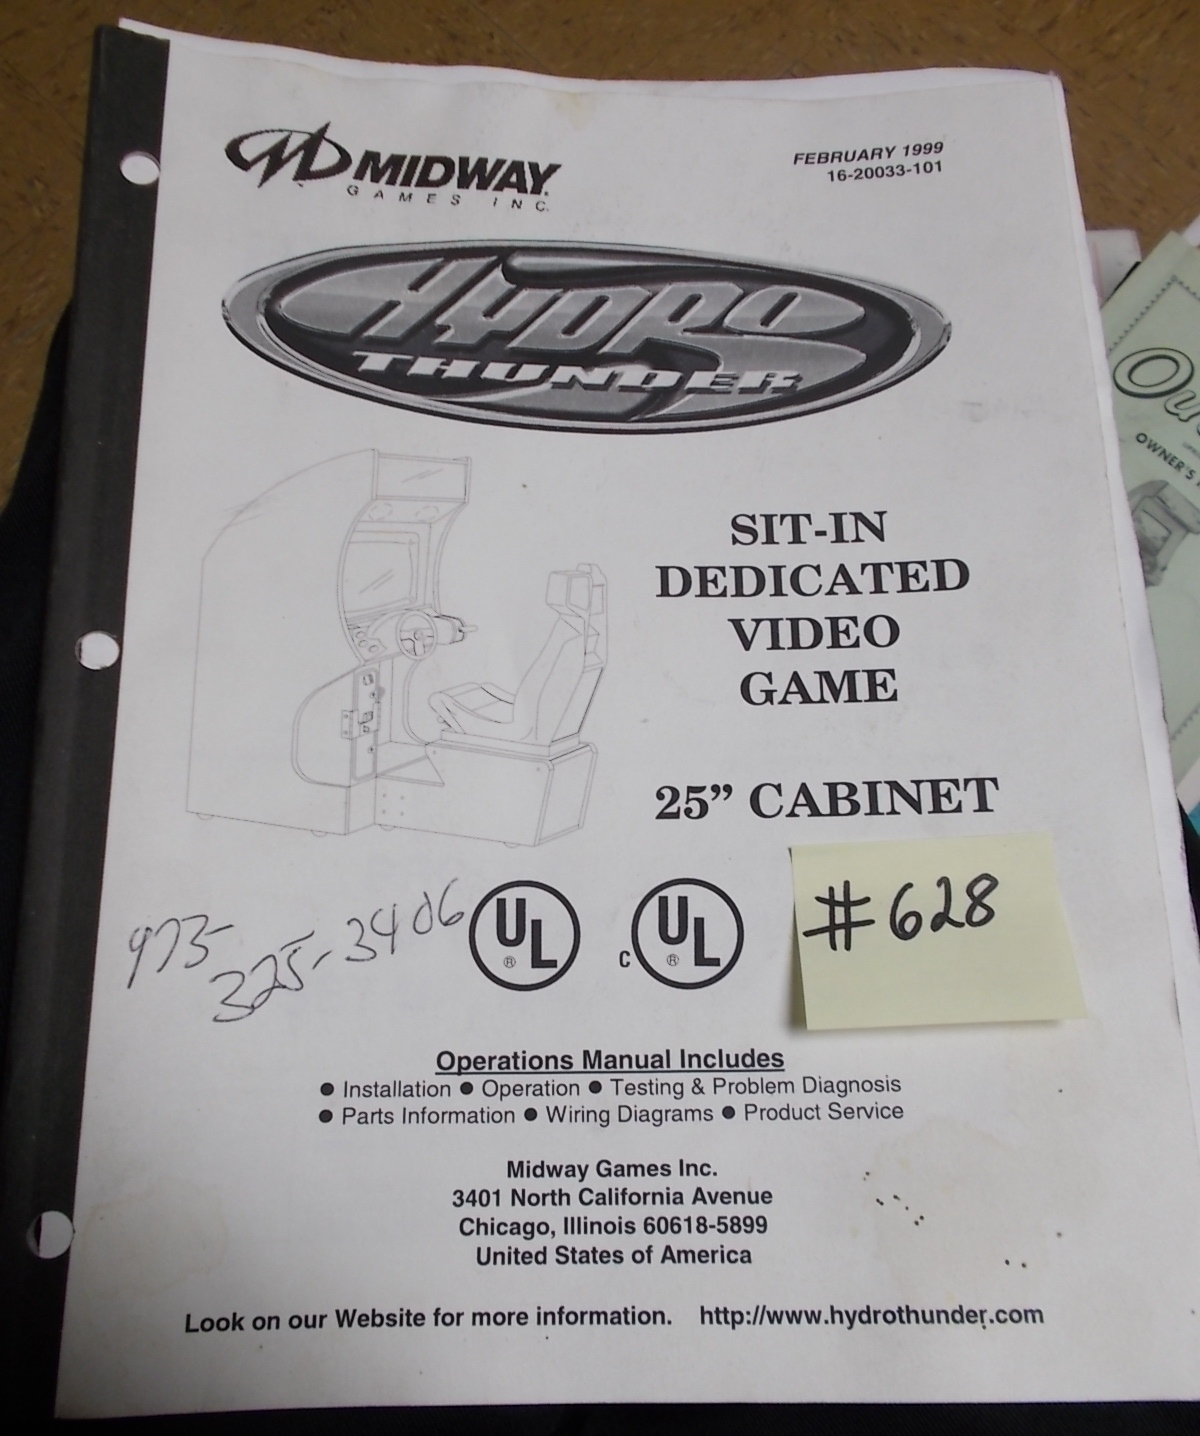 Hydro Thunder Arcade Machine Game Operations Manual 628 For Sale By Vending Wiring Diagram Midway Free Shipping